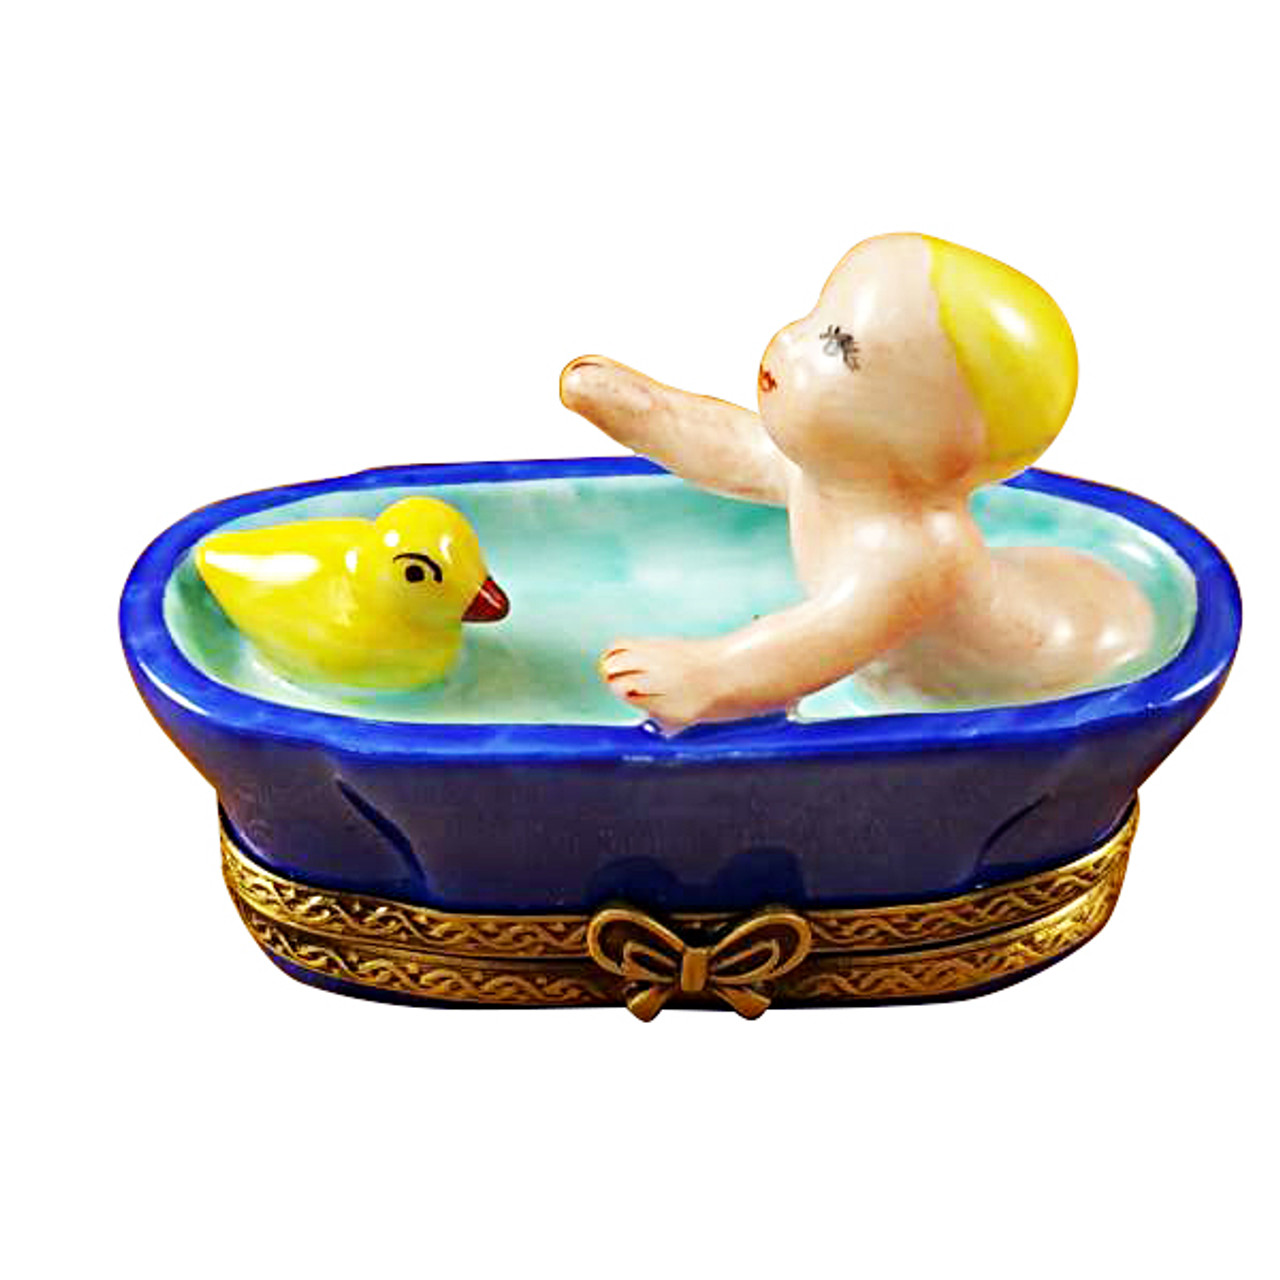 Limoges Imports Baby In Tub With Duck Limoges Box